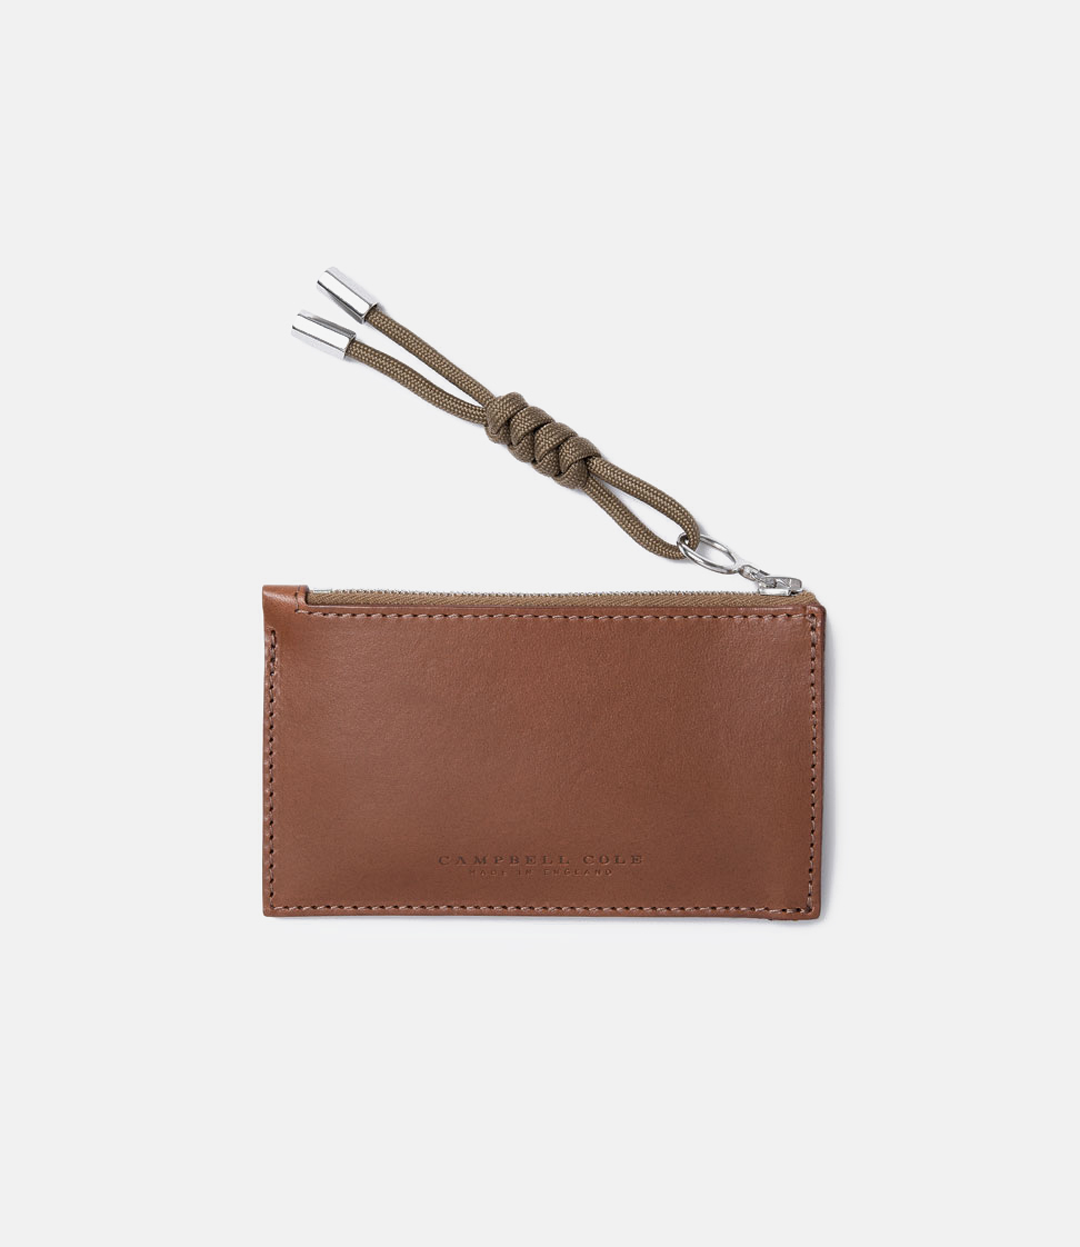 Campbell Cole. CampbellCole. Simple Collection. Simple Coin Pouch. Lanyard. SimpleCoinPouch. Tan. Banton Frameworks